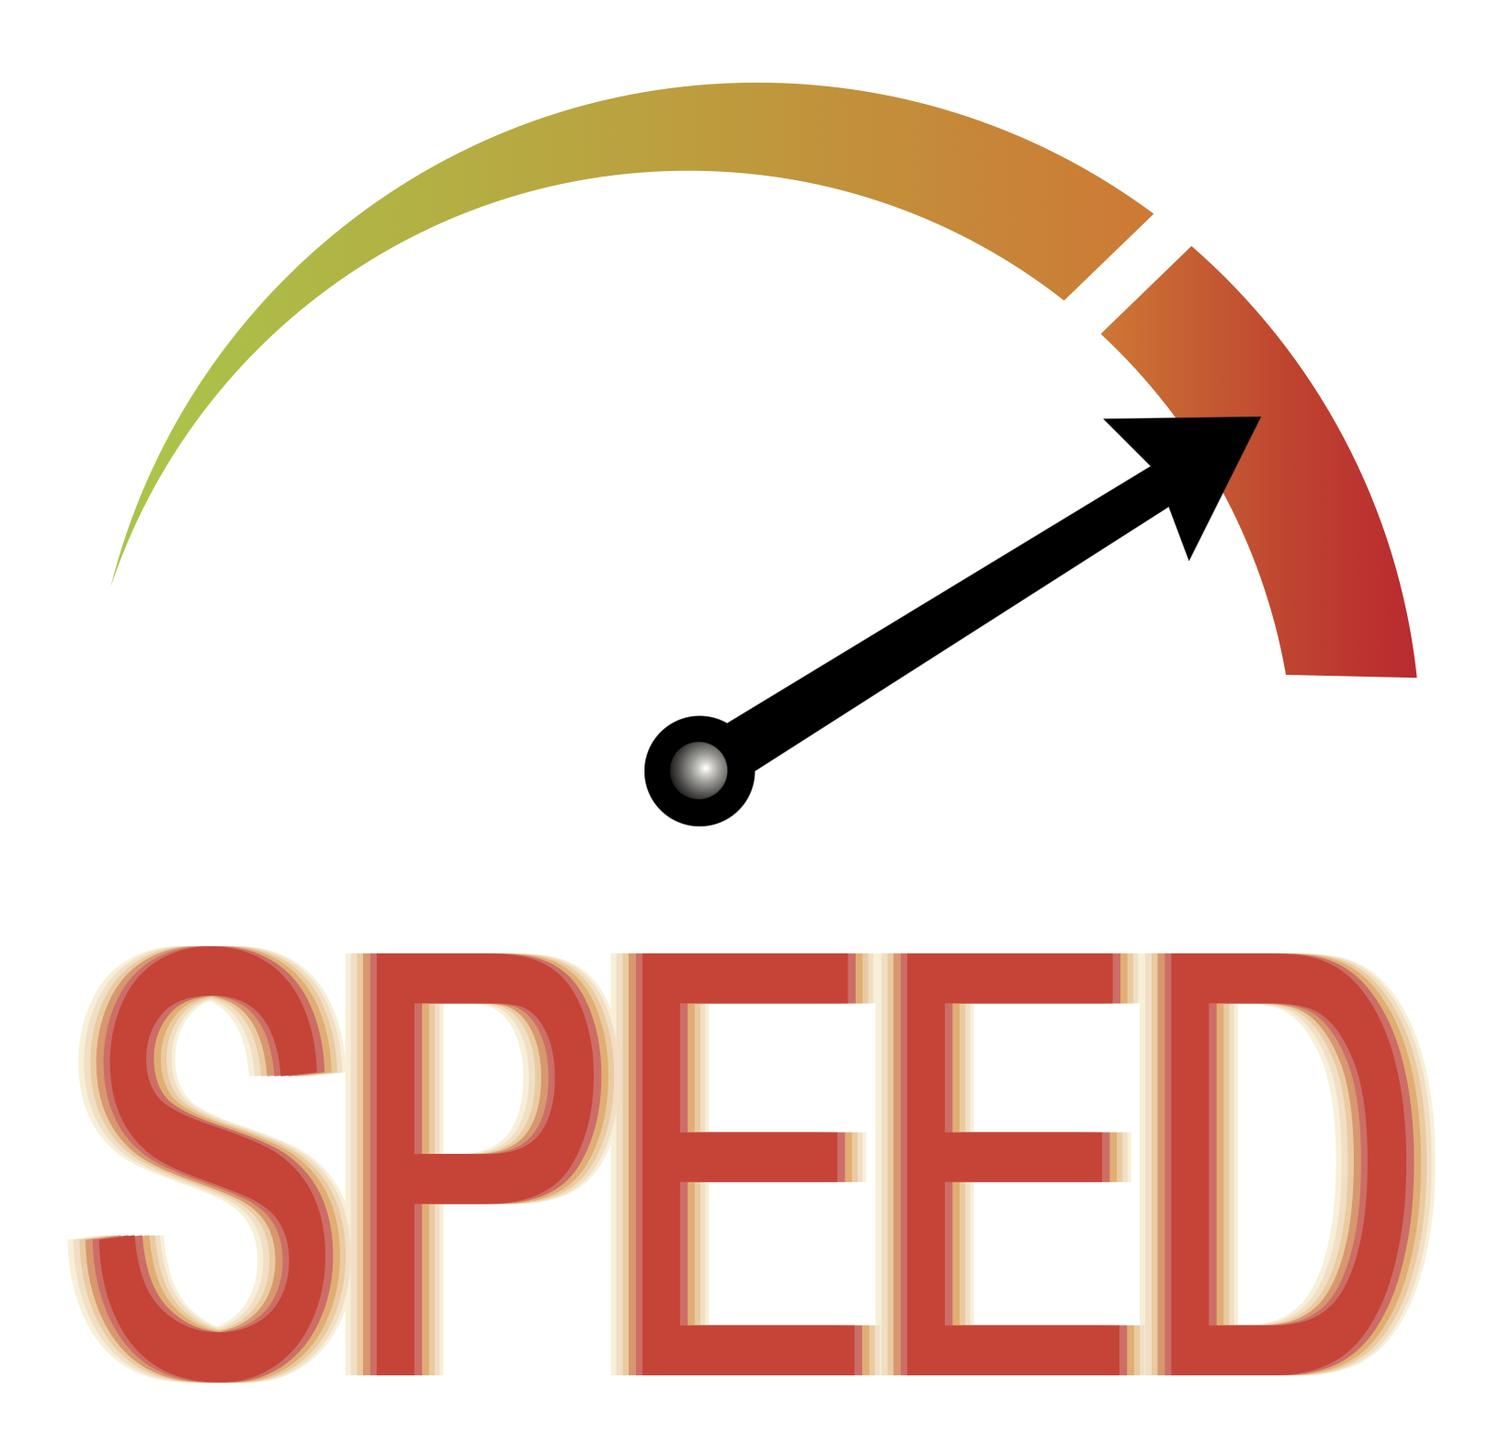 Wordpress Website Speed Optimization by weblinsolutions - 35815